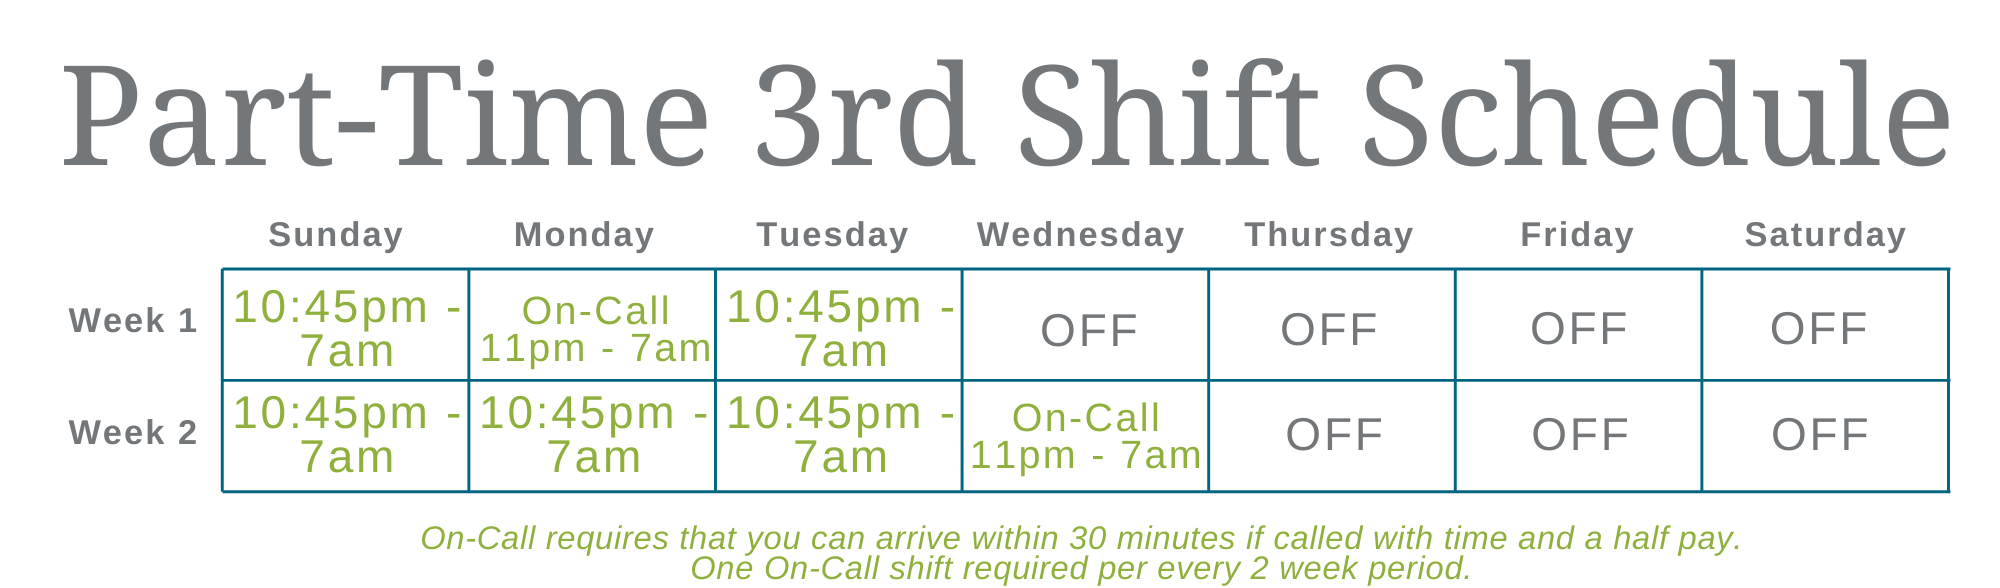 Copy of Schedule 3rd Shift (13)